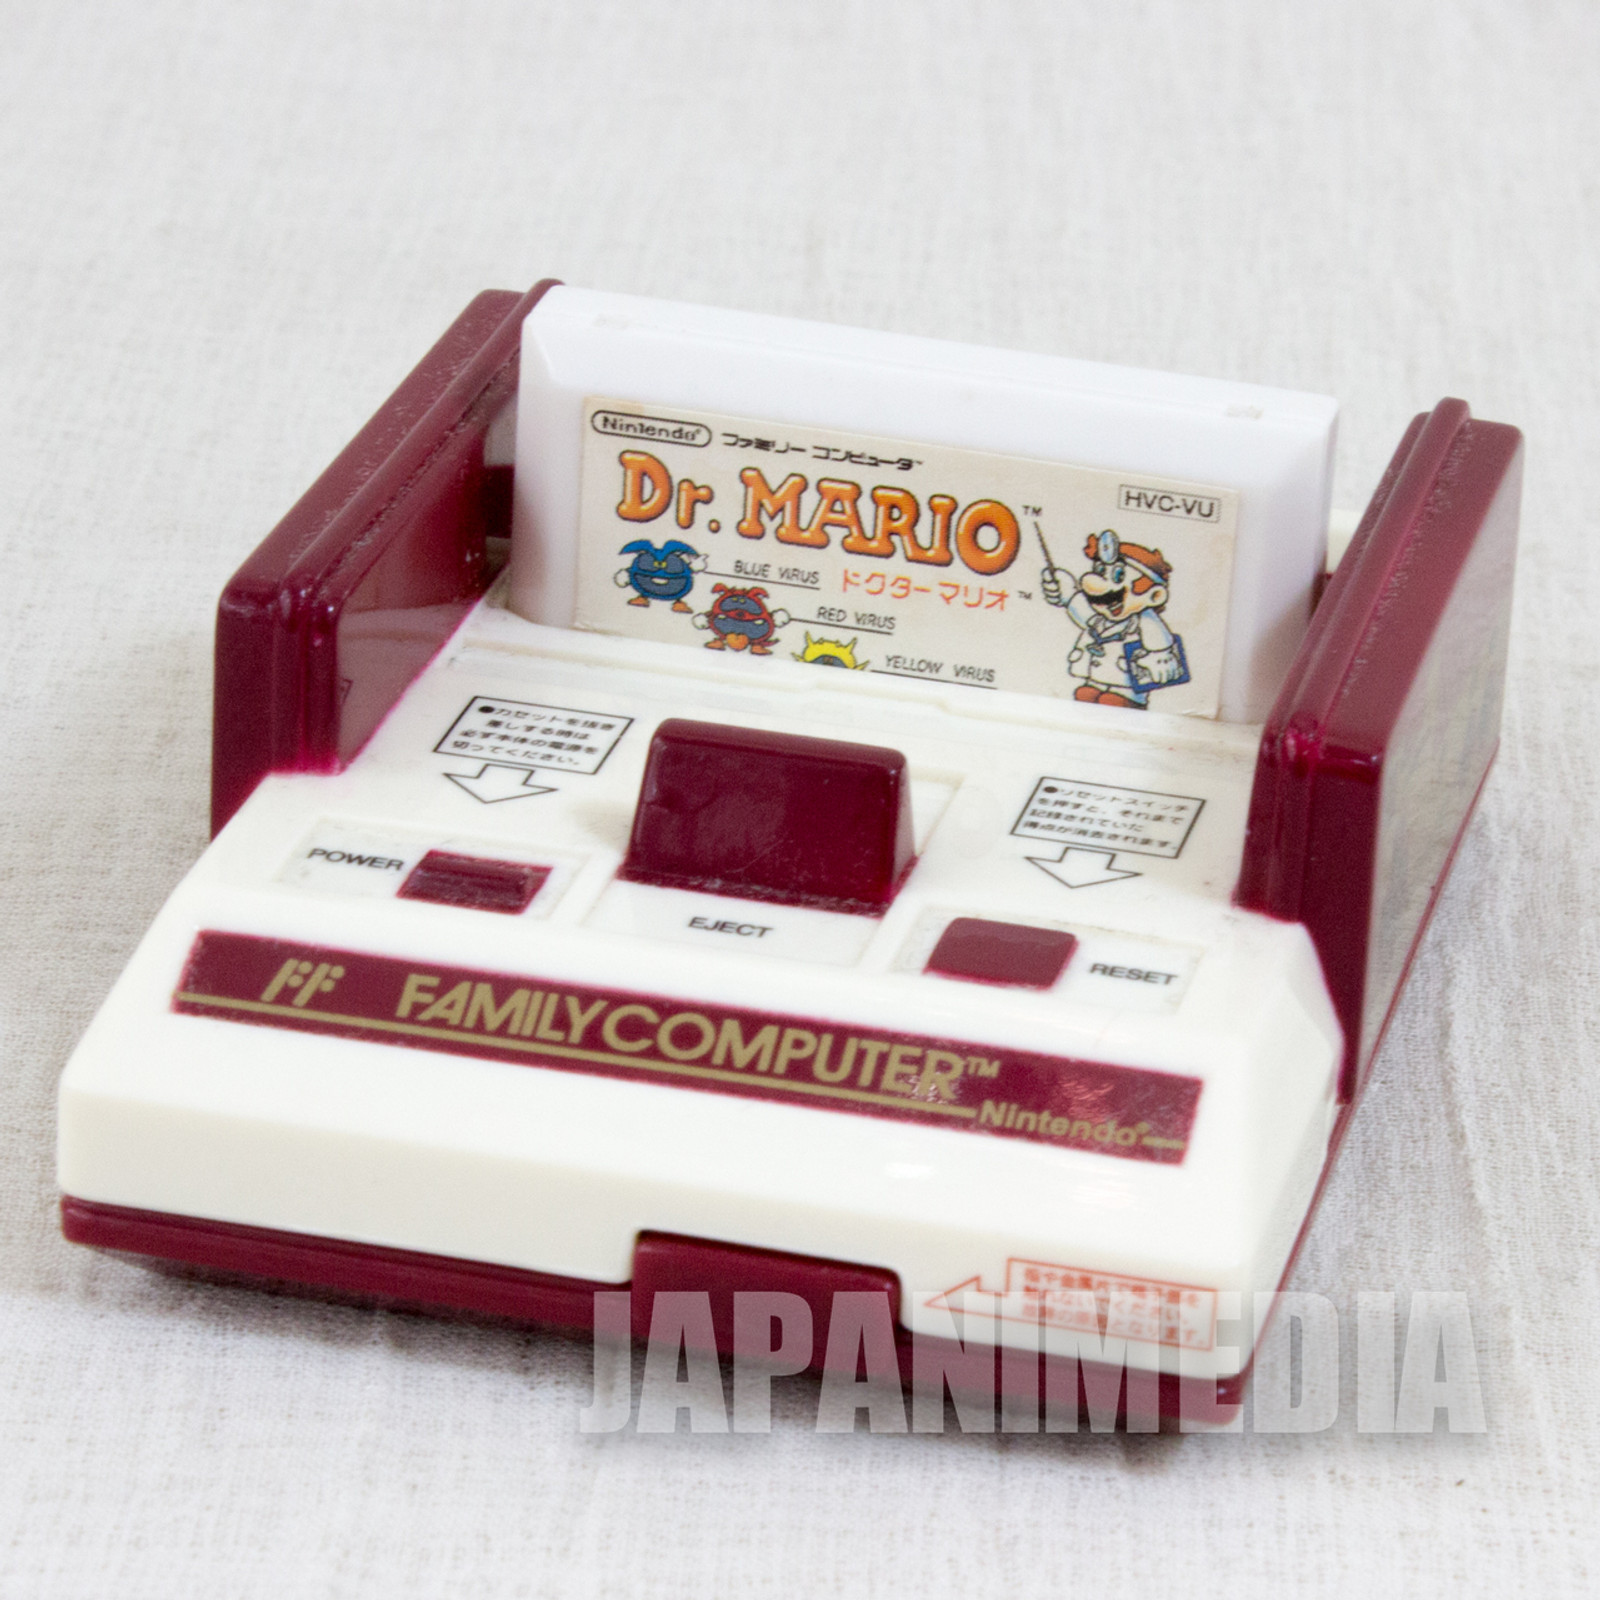 Dr. Mario Nintendo NES Famicom Family Computer Type Case JAPAN